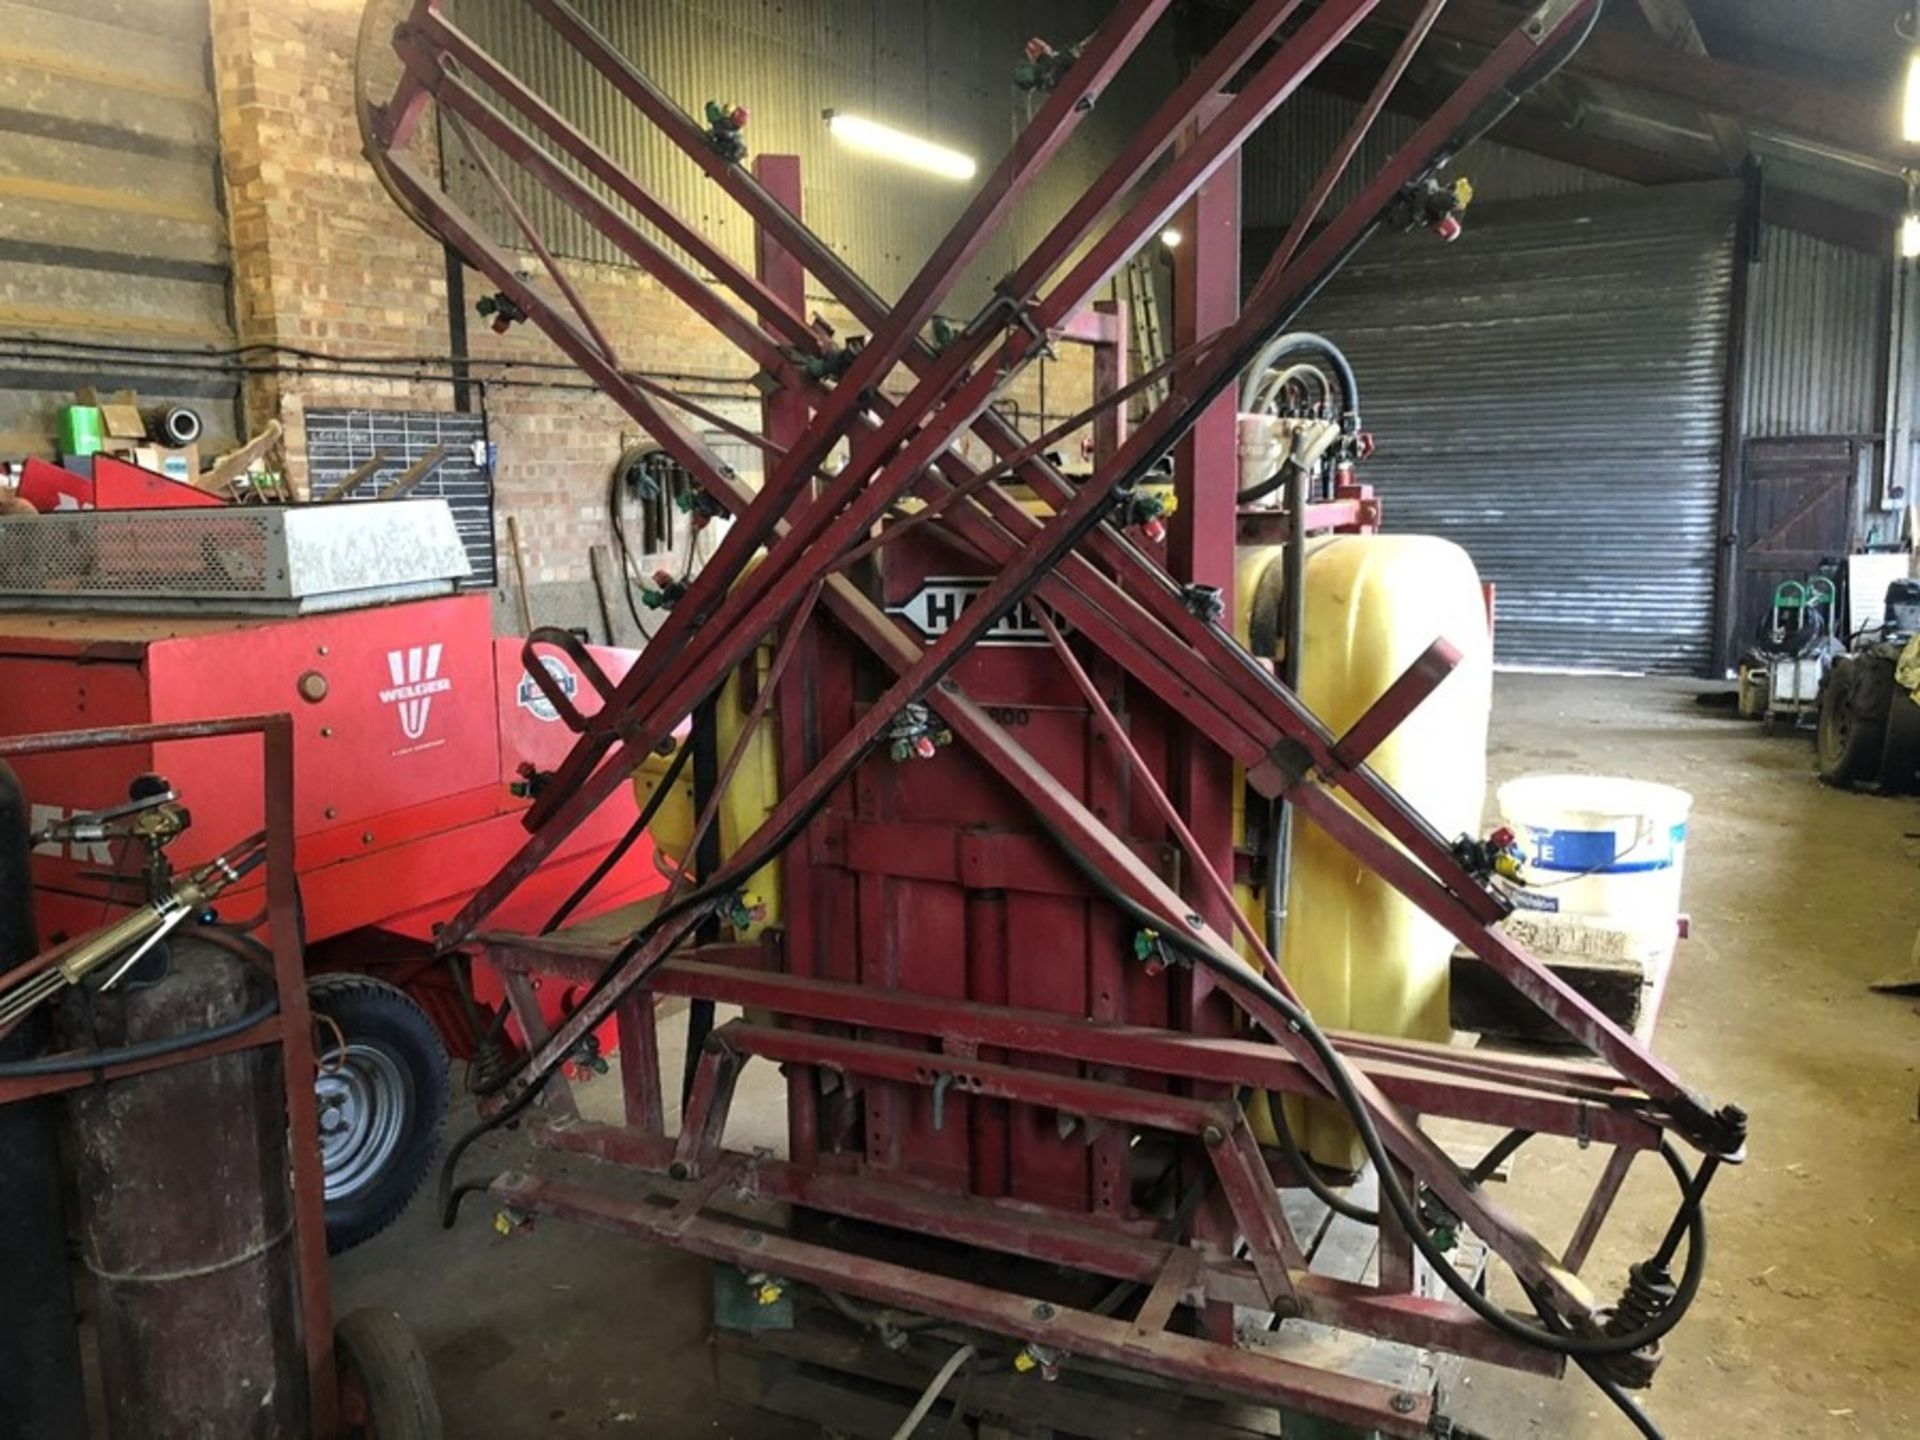 Hardi 12m 800lt manual sprayer with induction hopper, PTO shaft, not NSTS tested - Image 2 of 2